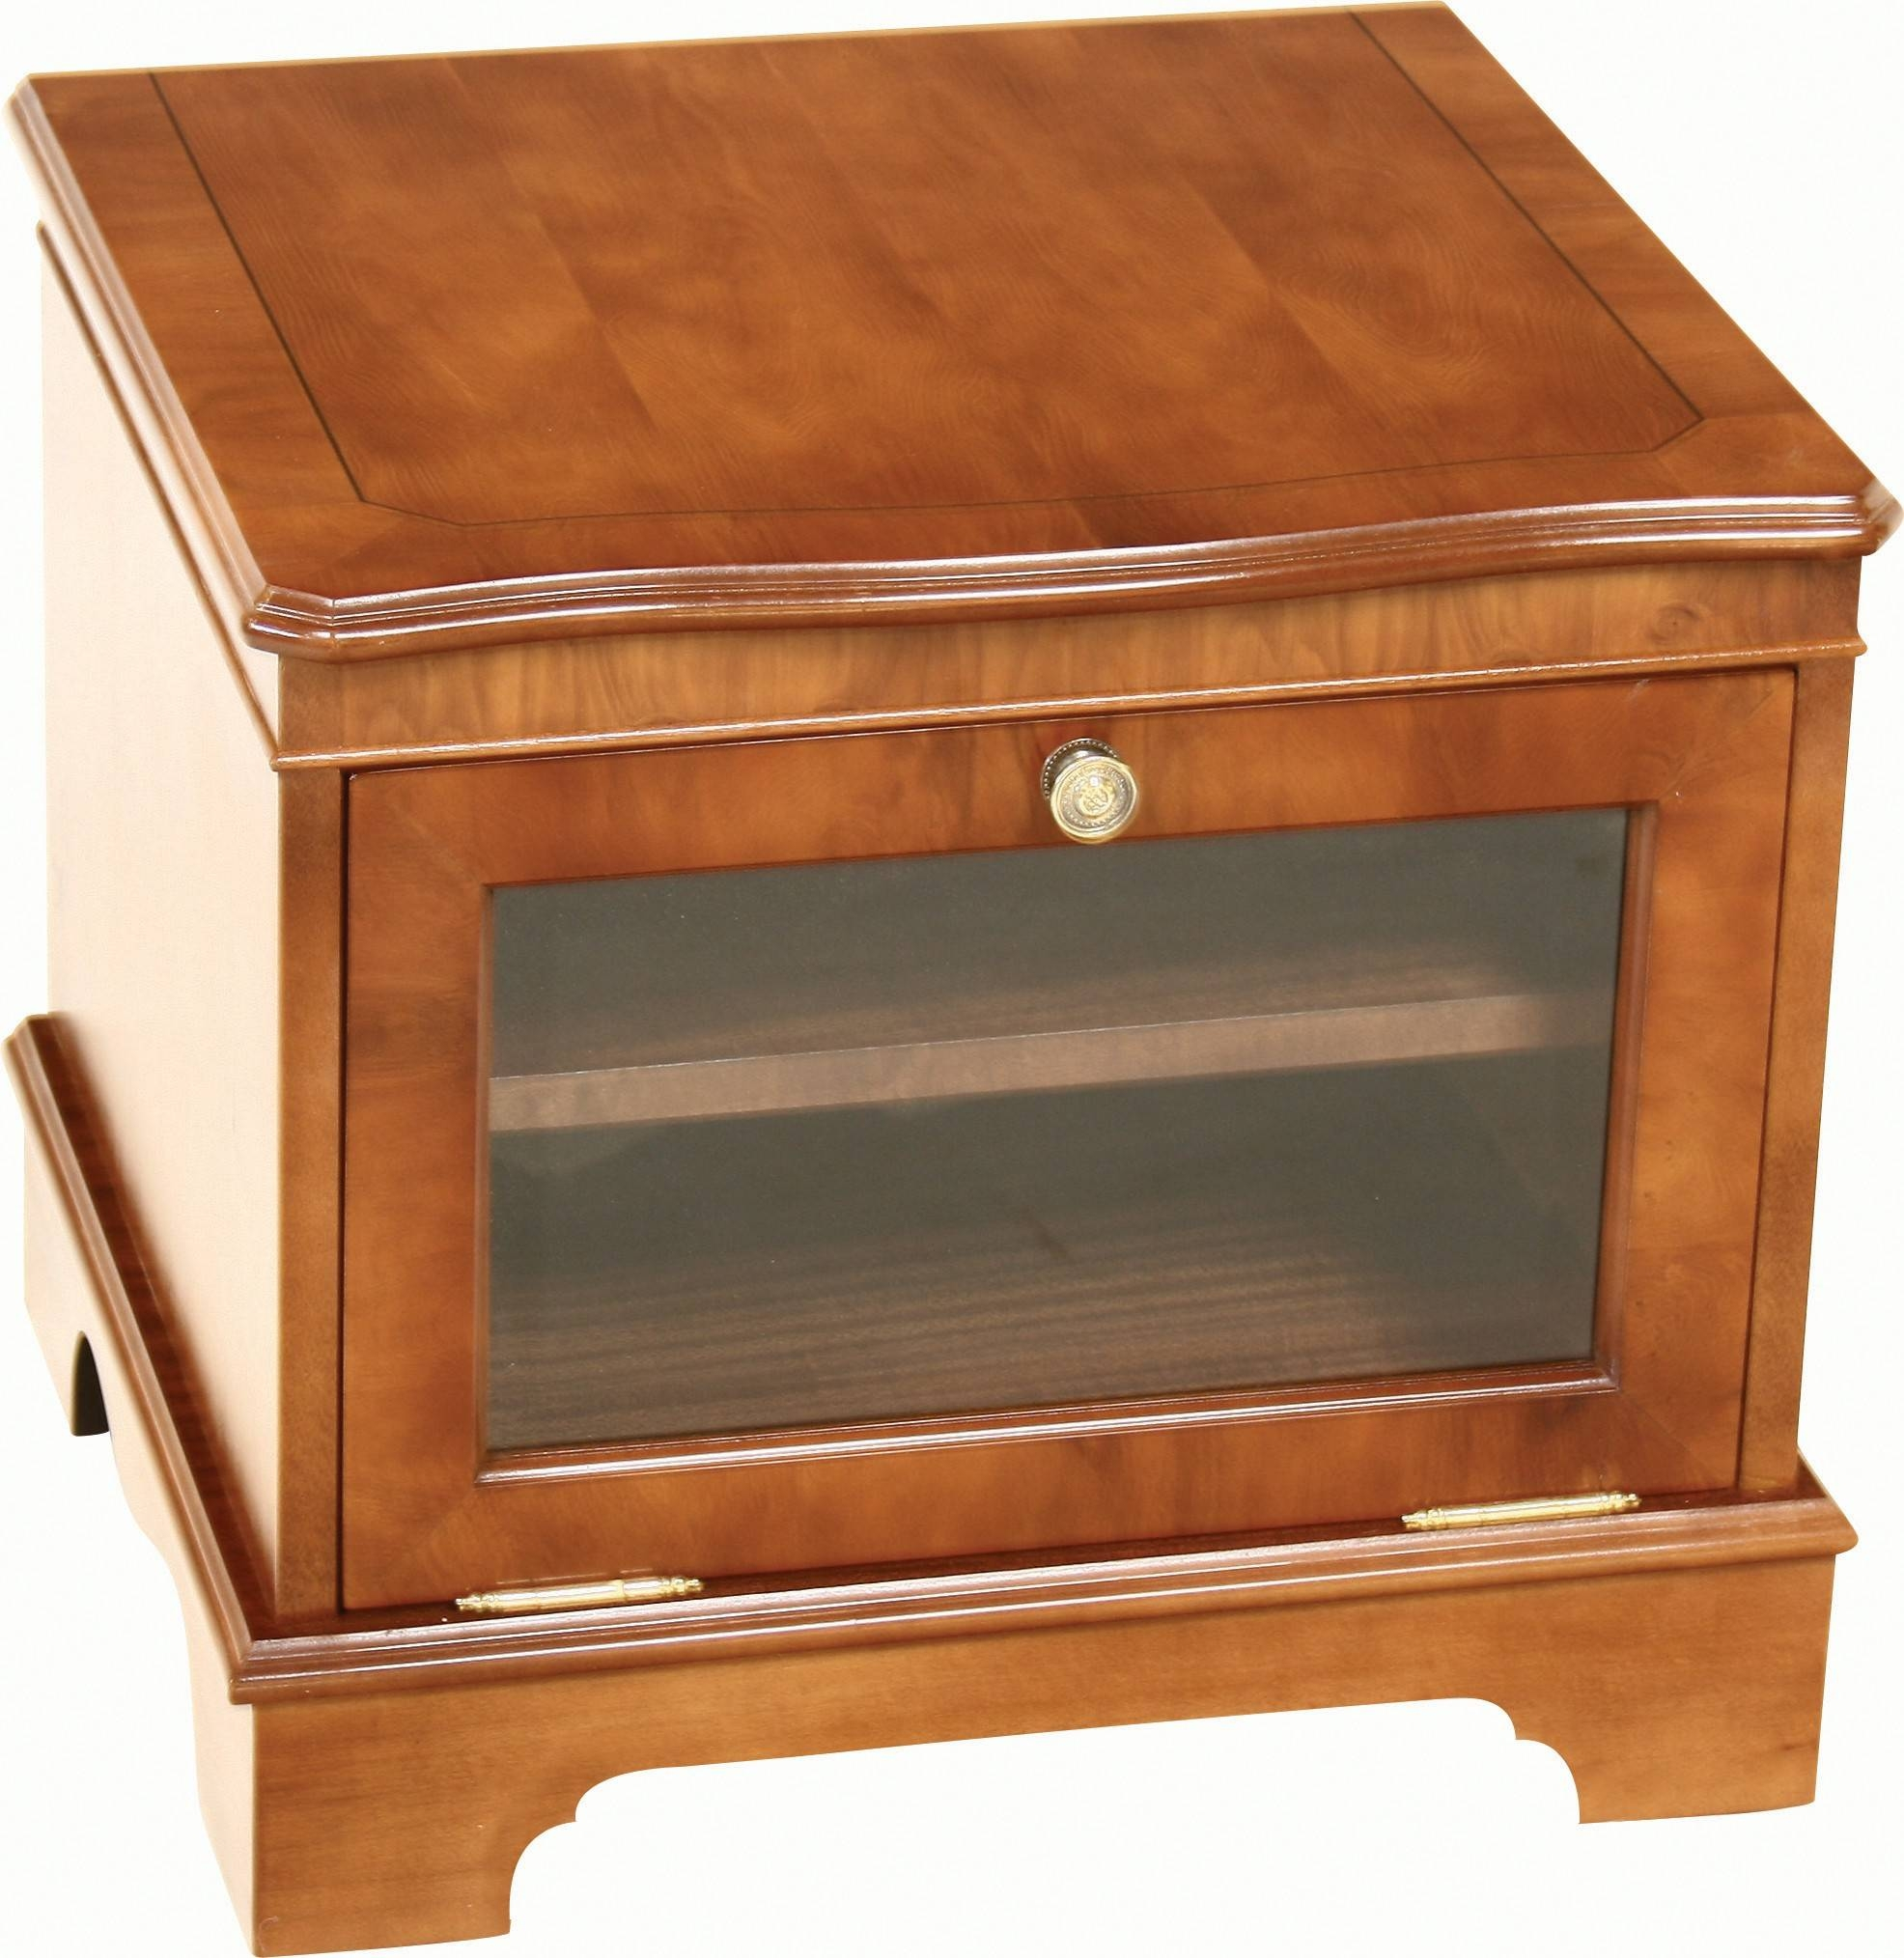 Small Tv Stand Glass - Tv Stands And Cabinets throughout Small Tv Cabinets (Image 12 of 15)